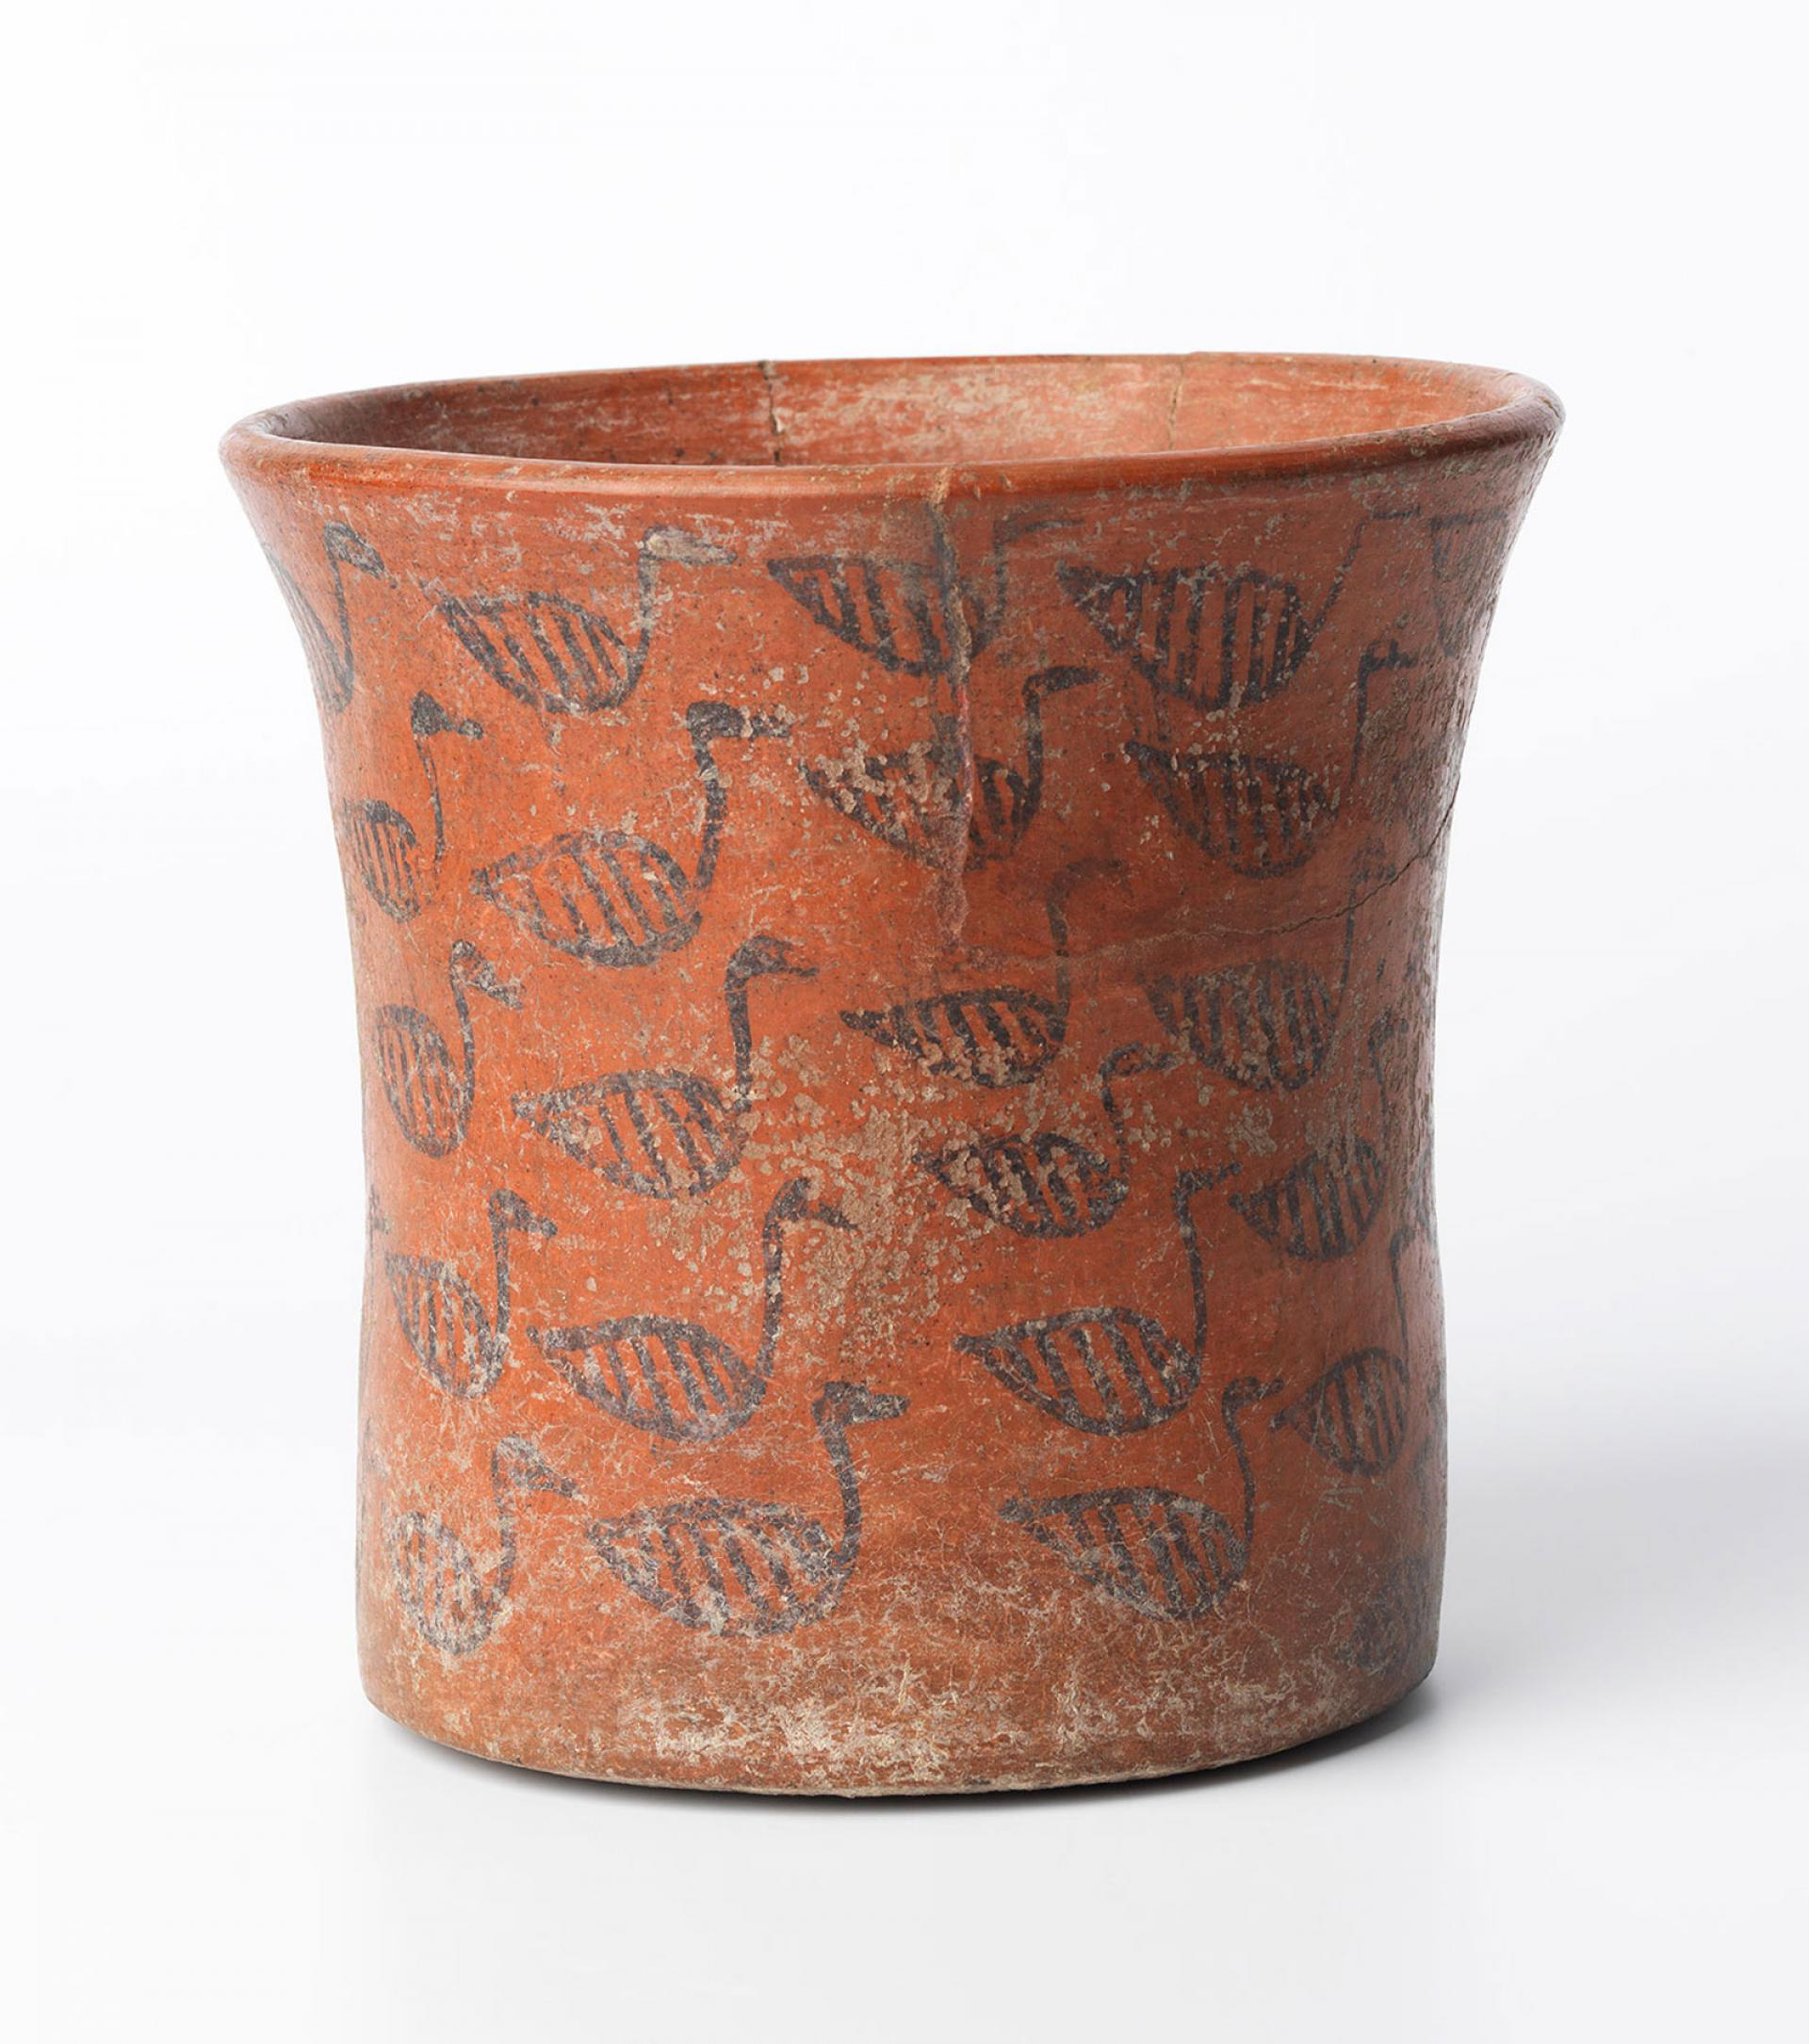 SHM 15242 - Cylindrical vessel Terracotta Hittite Imperial Period Last quarter of 2nd millenium BC Eastern Anatolia